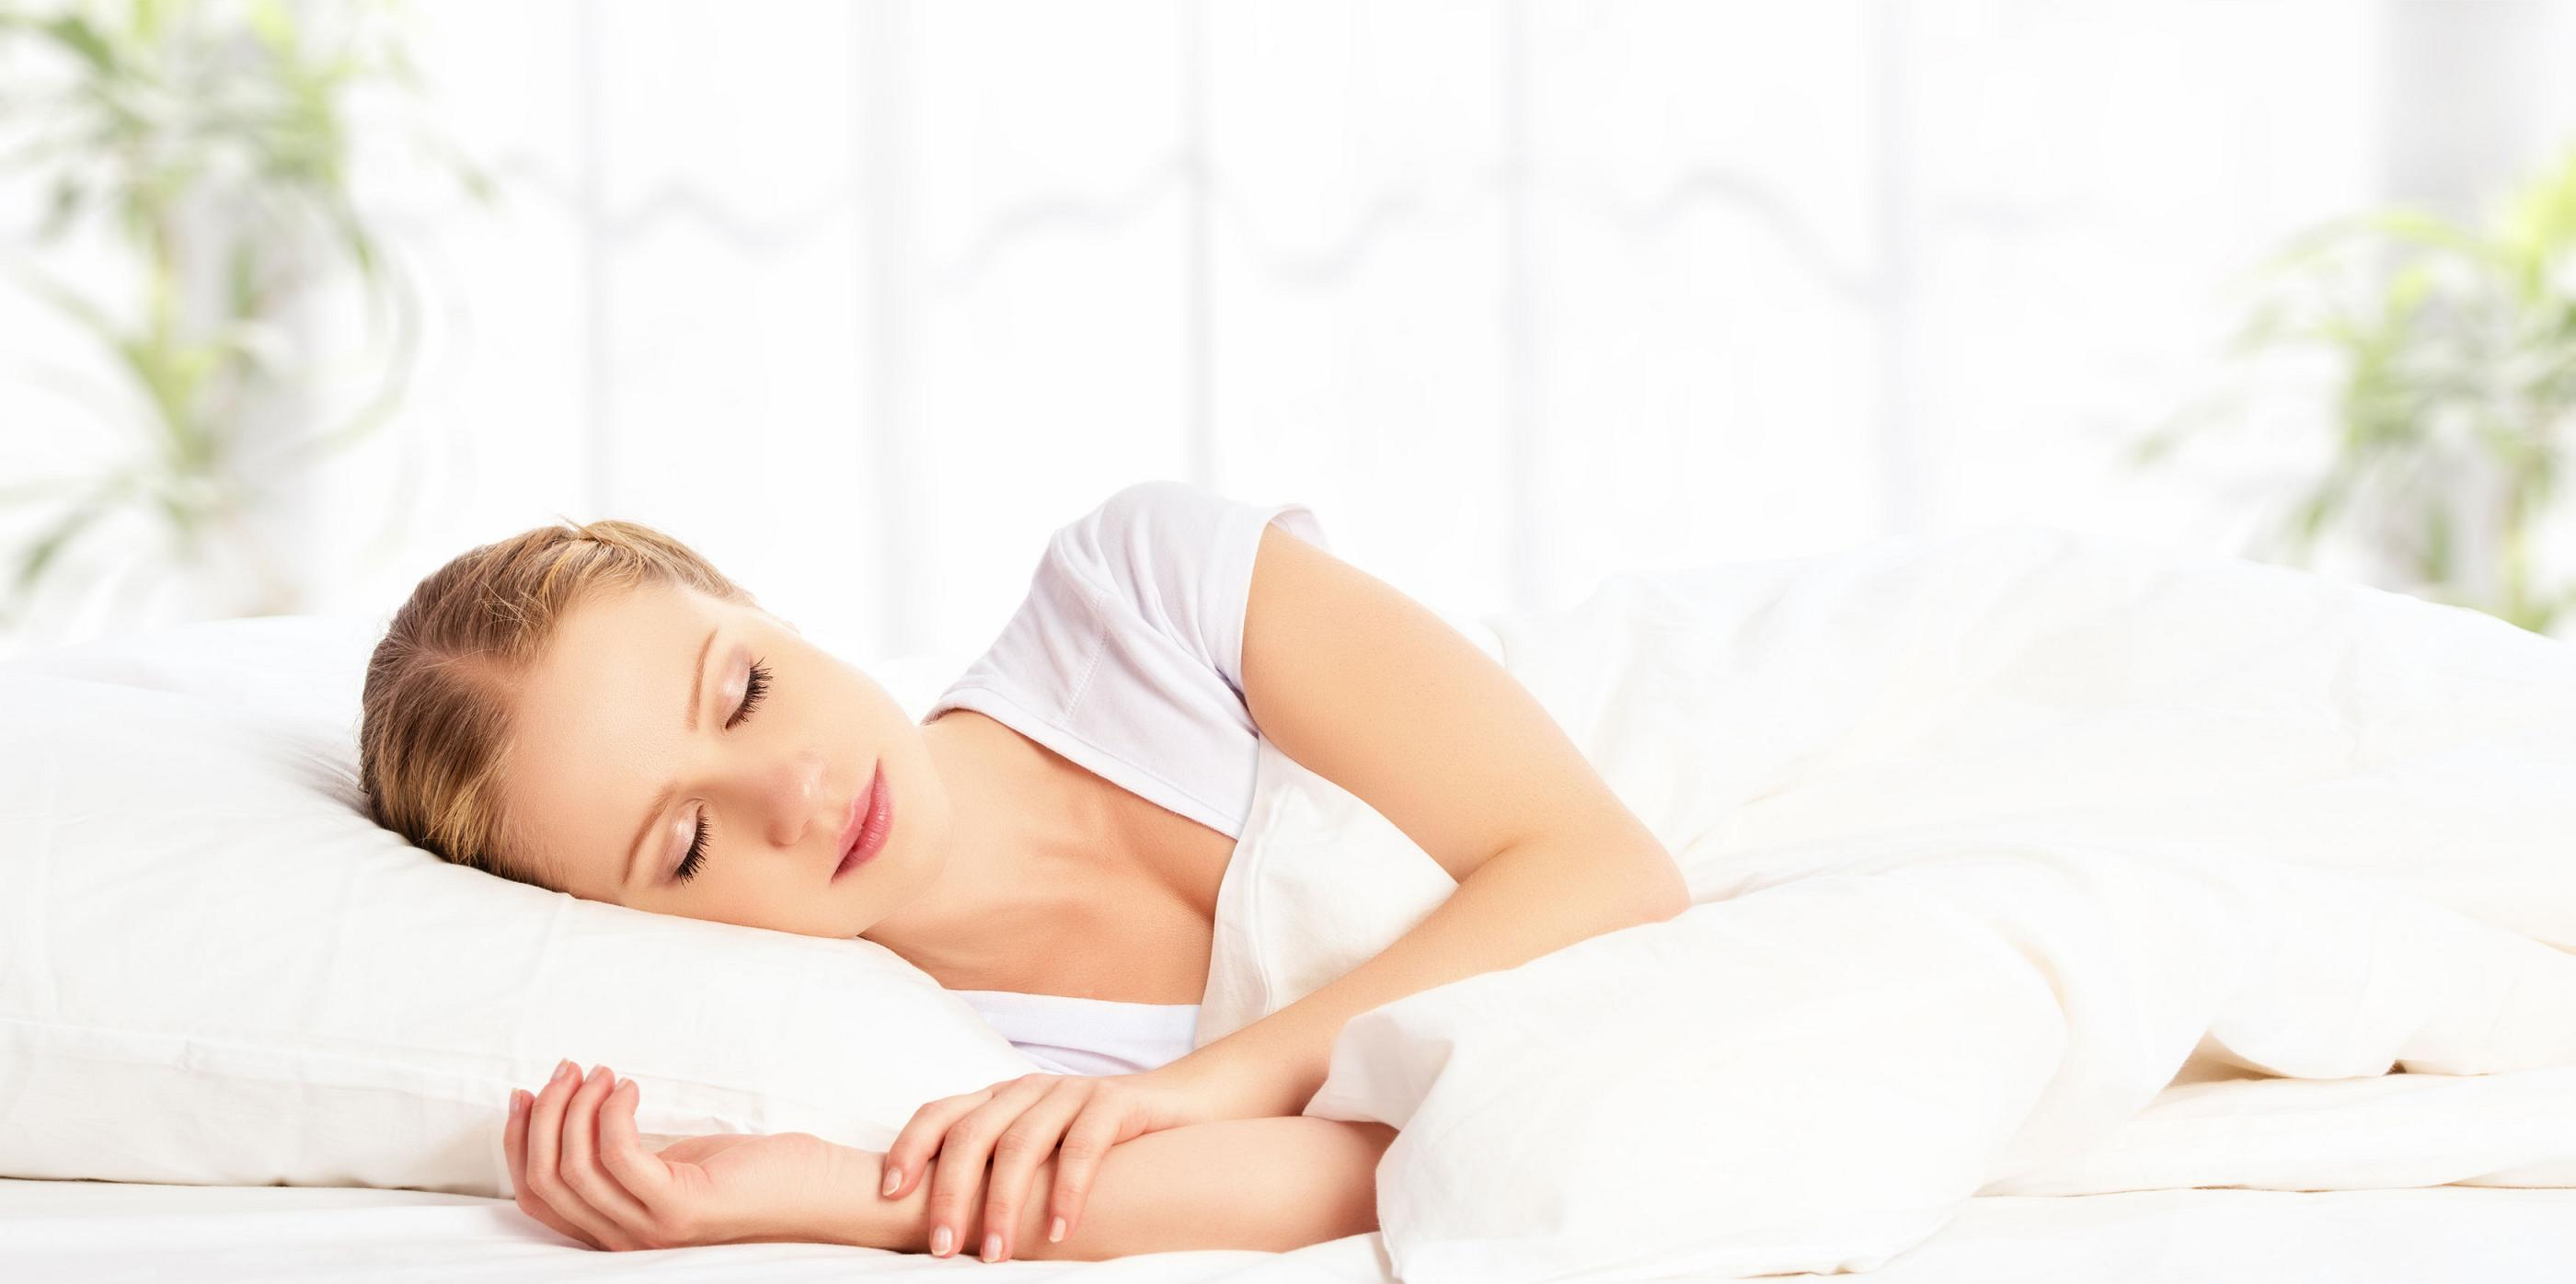 Comfortable Woman Sleeping Peacefully on a Premium Quality Heartland Mattress